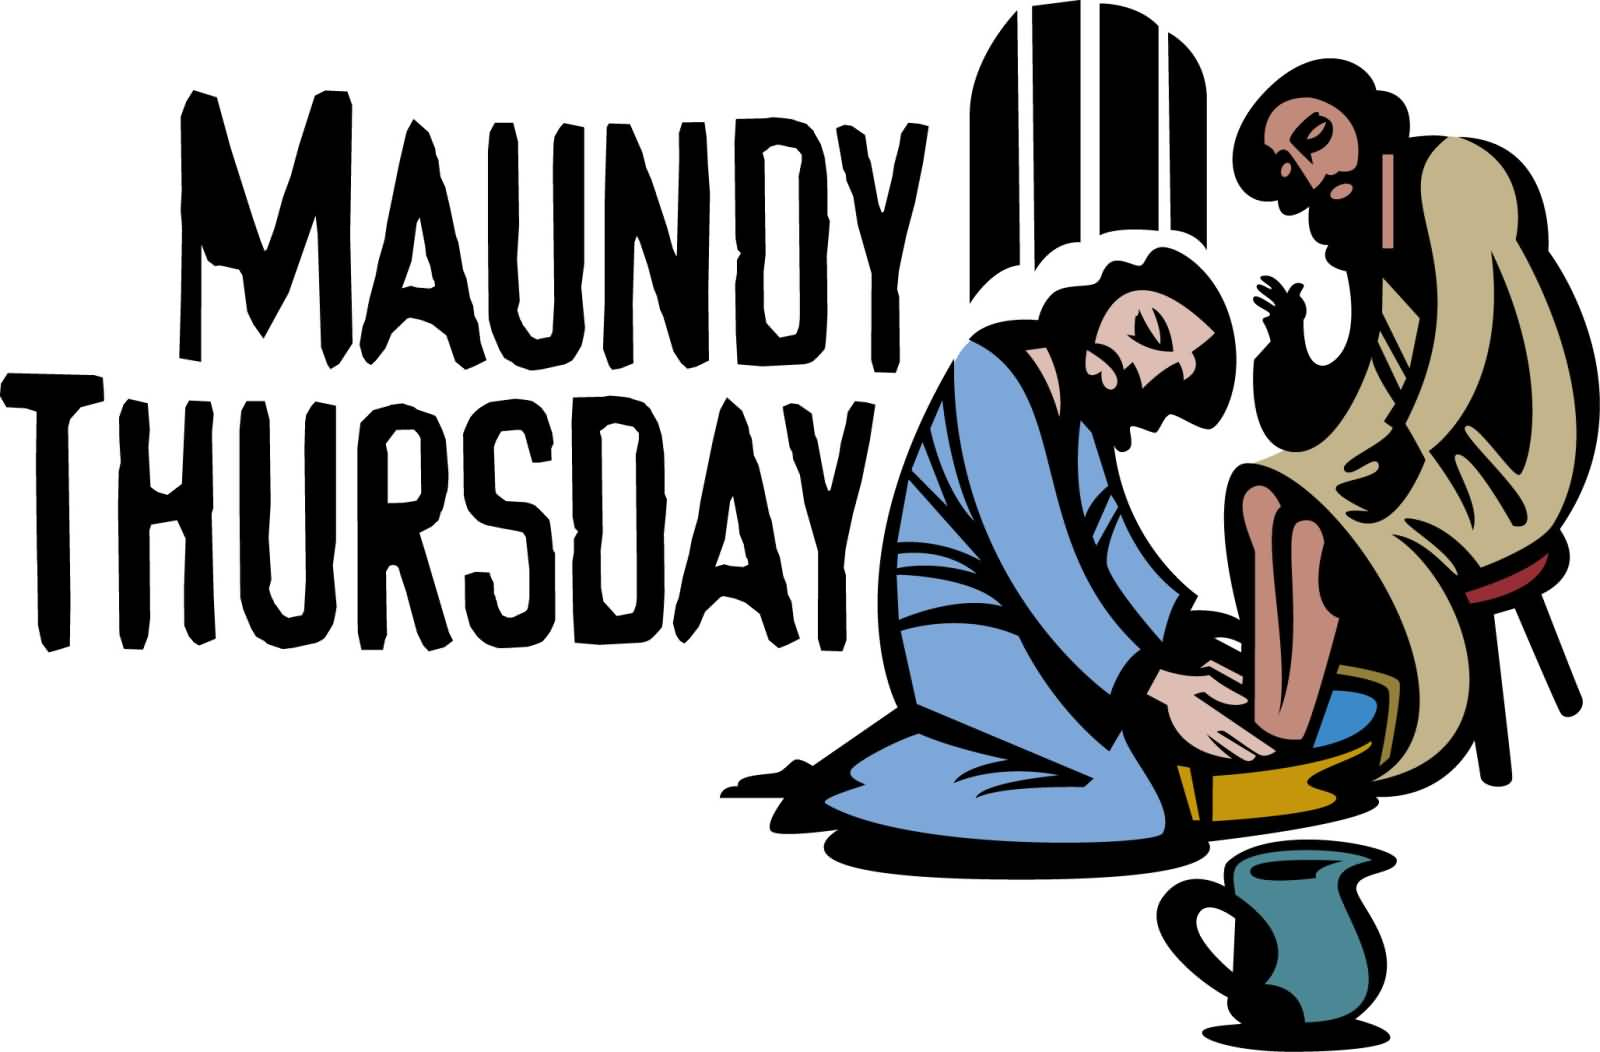 Maundy Thursday Clipart Many Interesting Cliparts